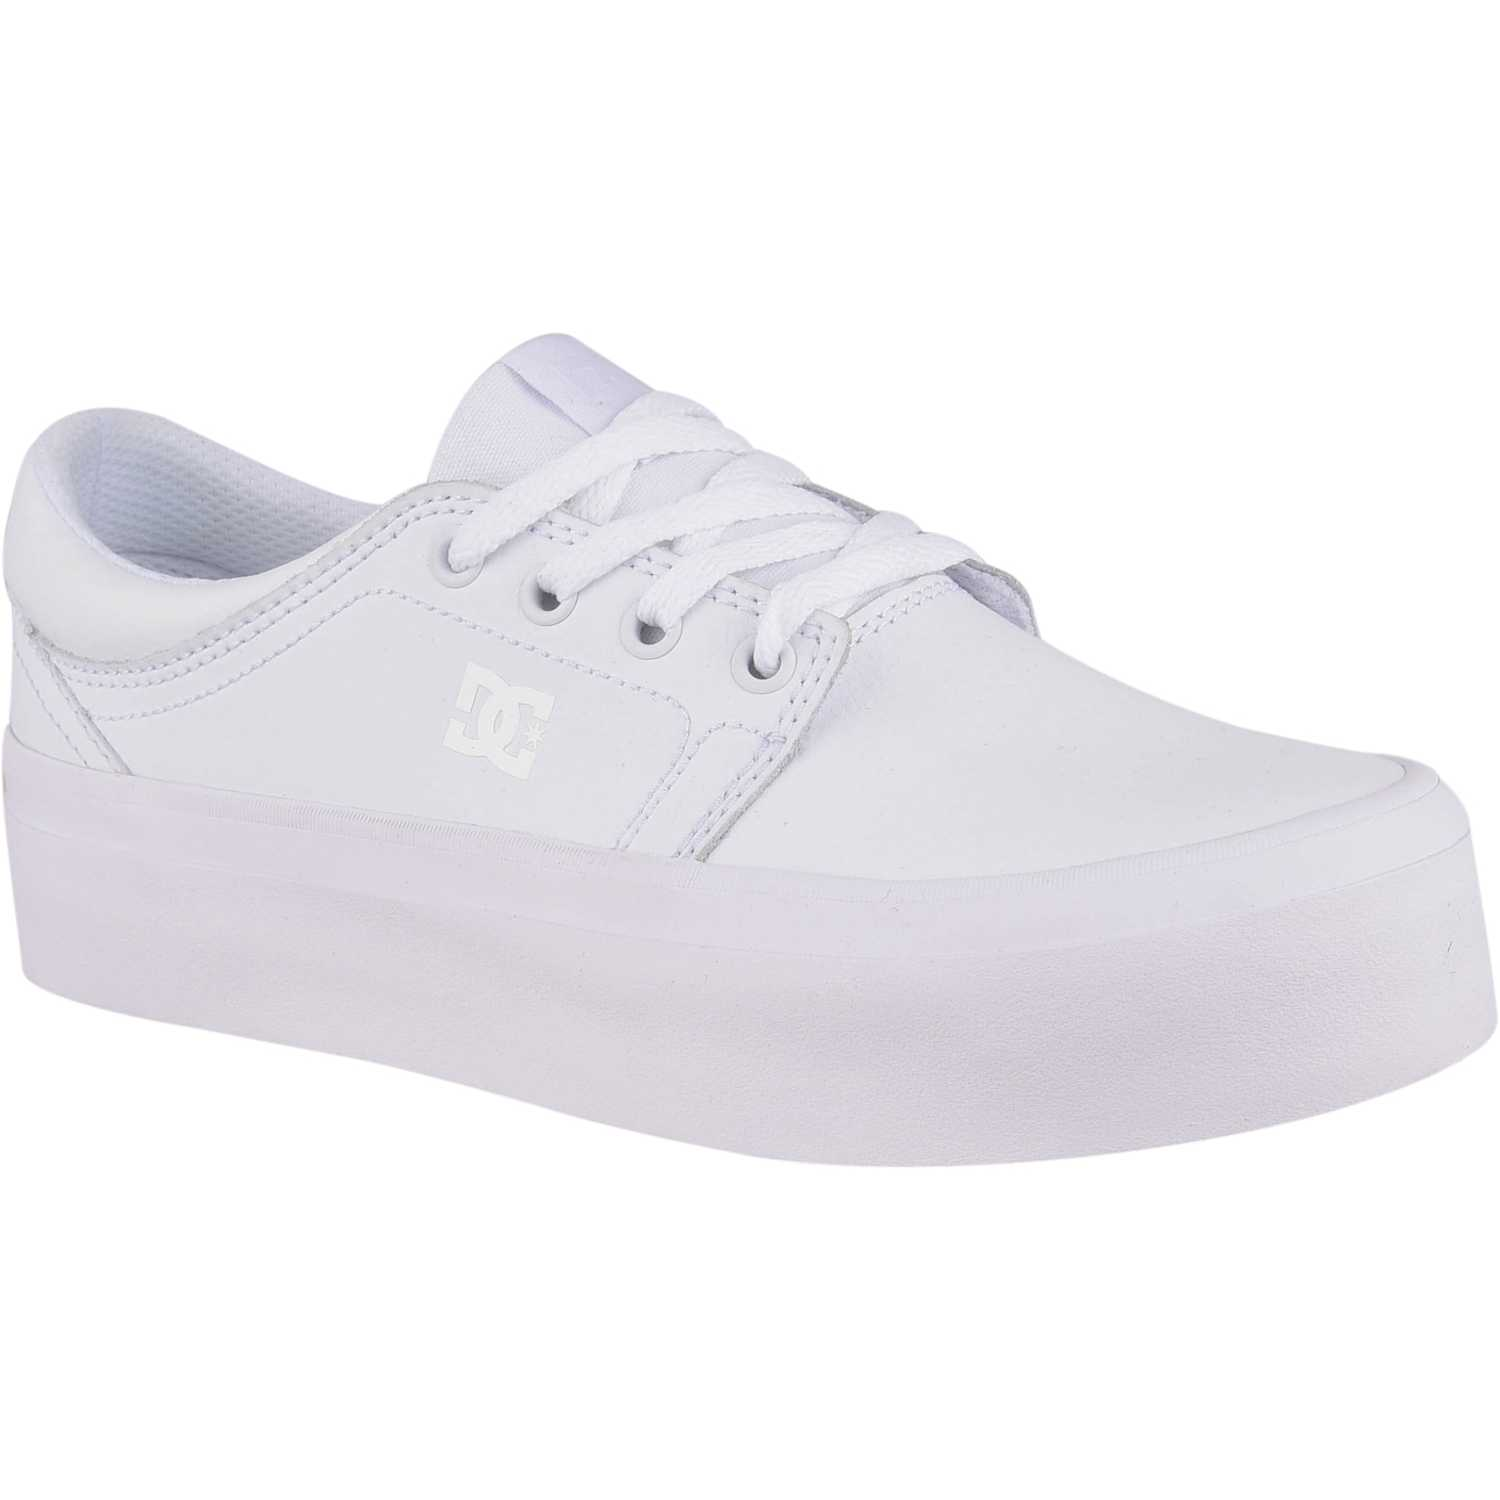 DC trase platform Blanco Walking